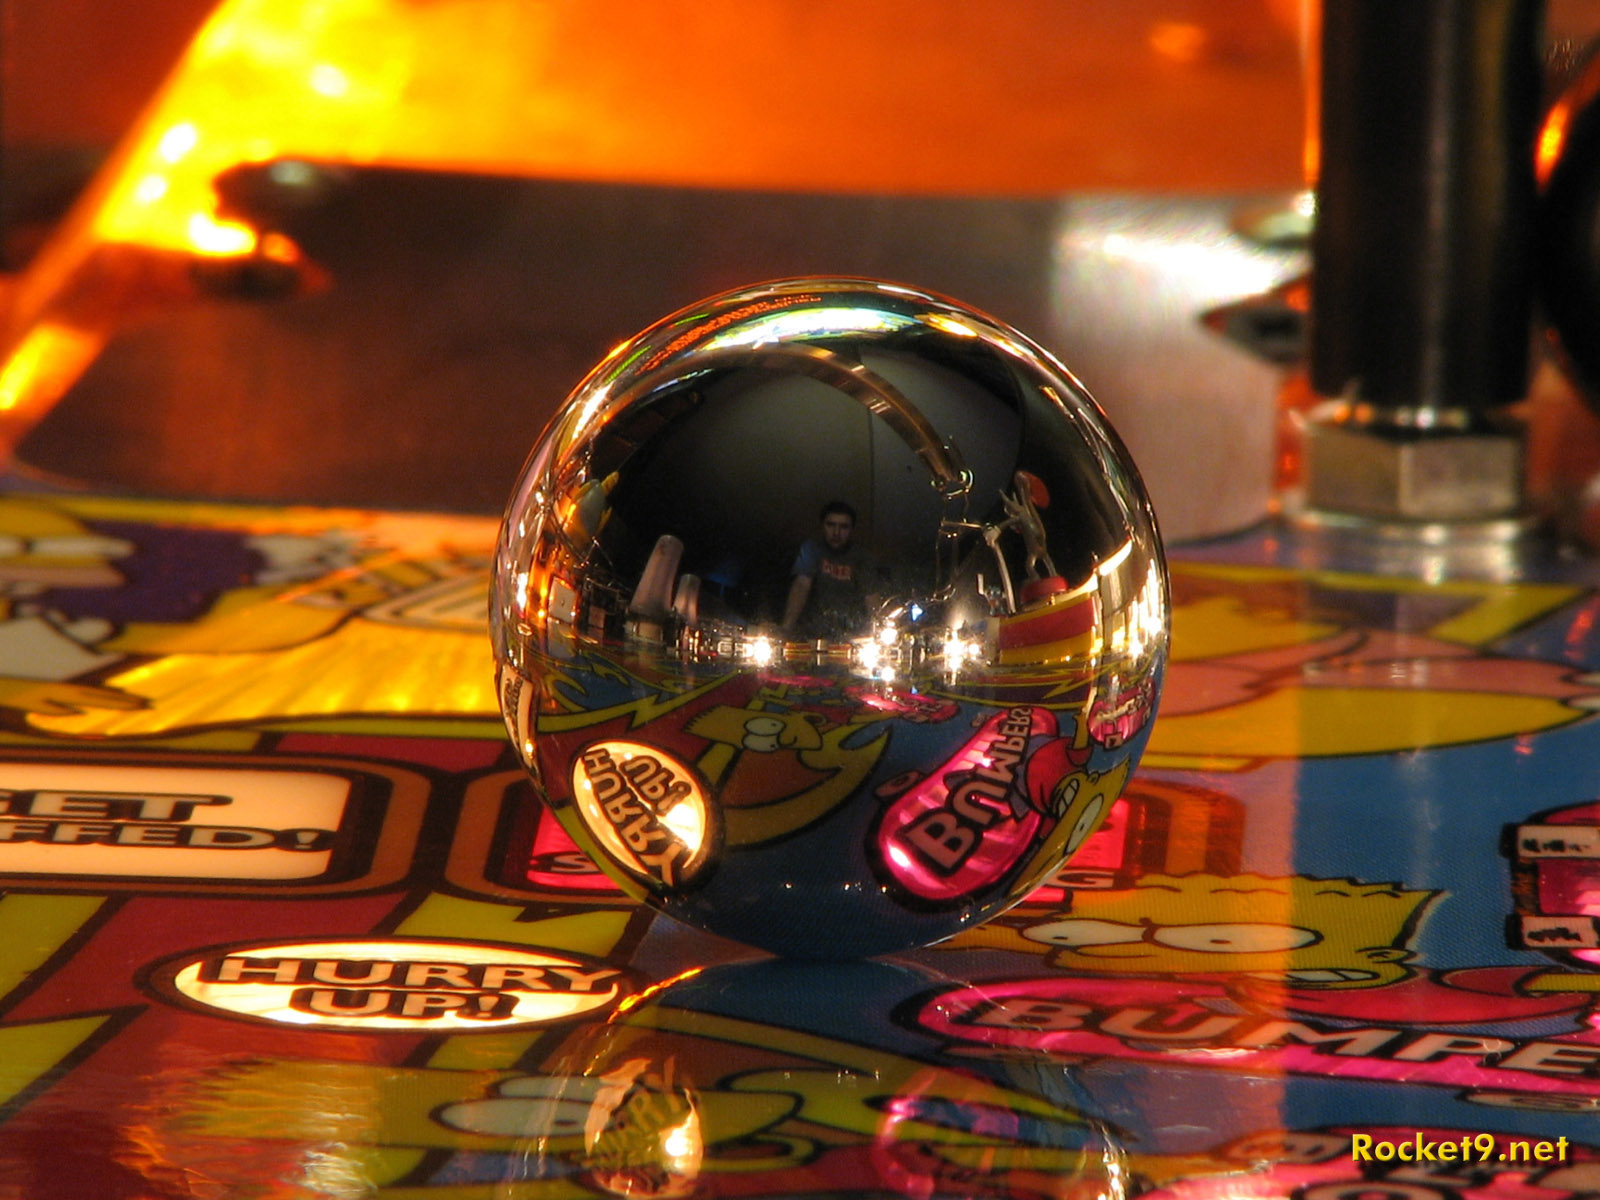 pinball in motion